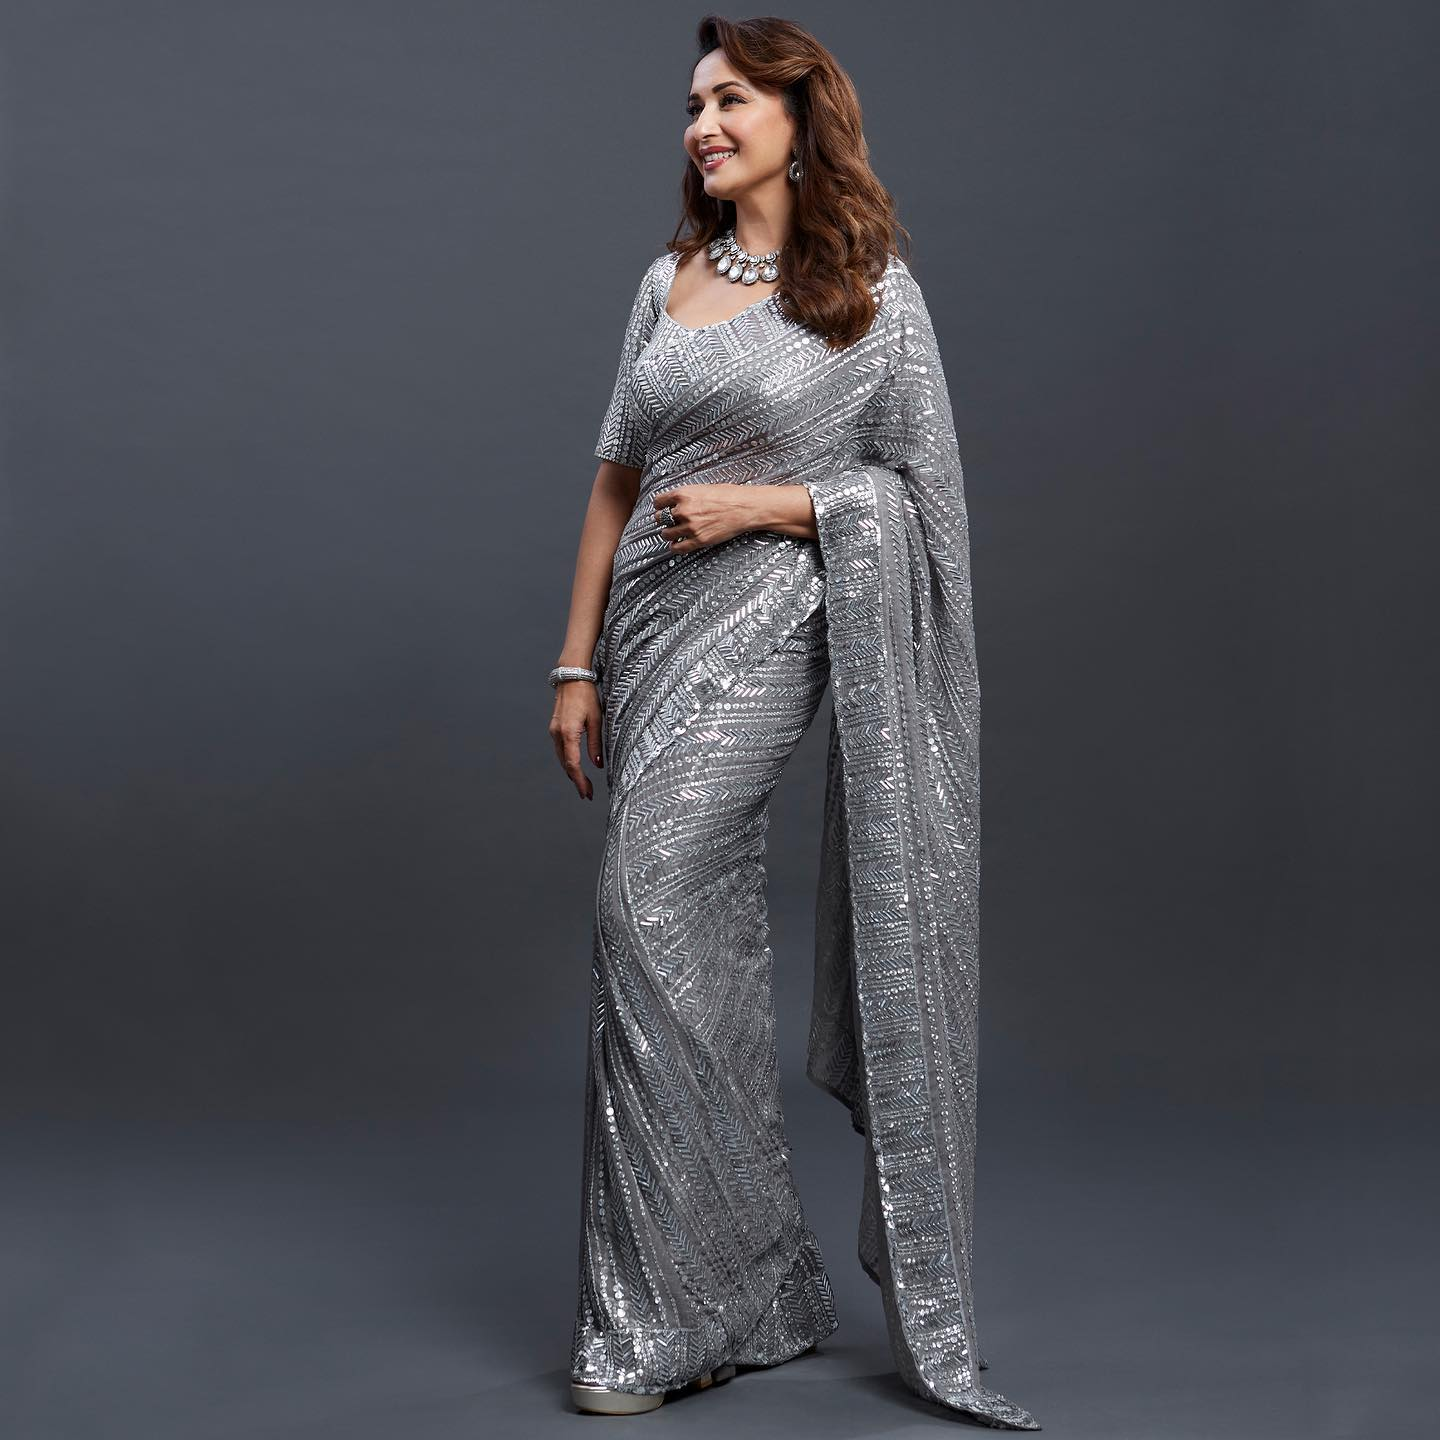 The enchanting Madhuri Dixit Nene transcends a timeless aura in Manish Malhotra six yards of glamourous grey embroidered in signature Taban sequins. 2021-05-14